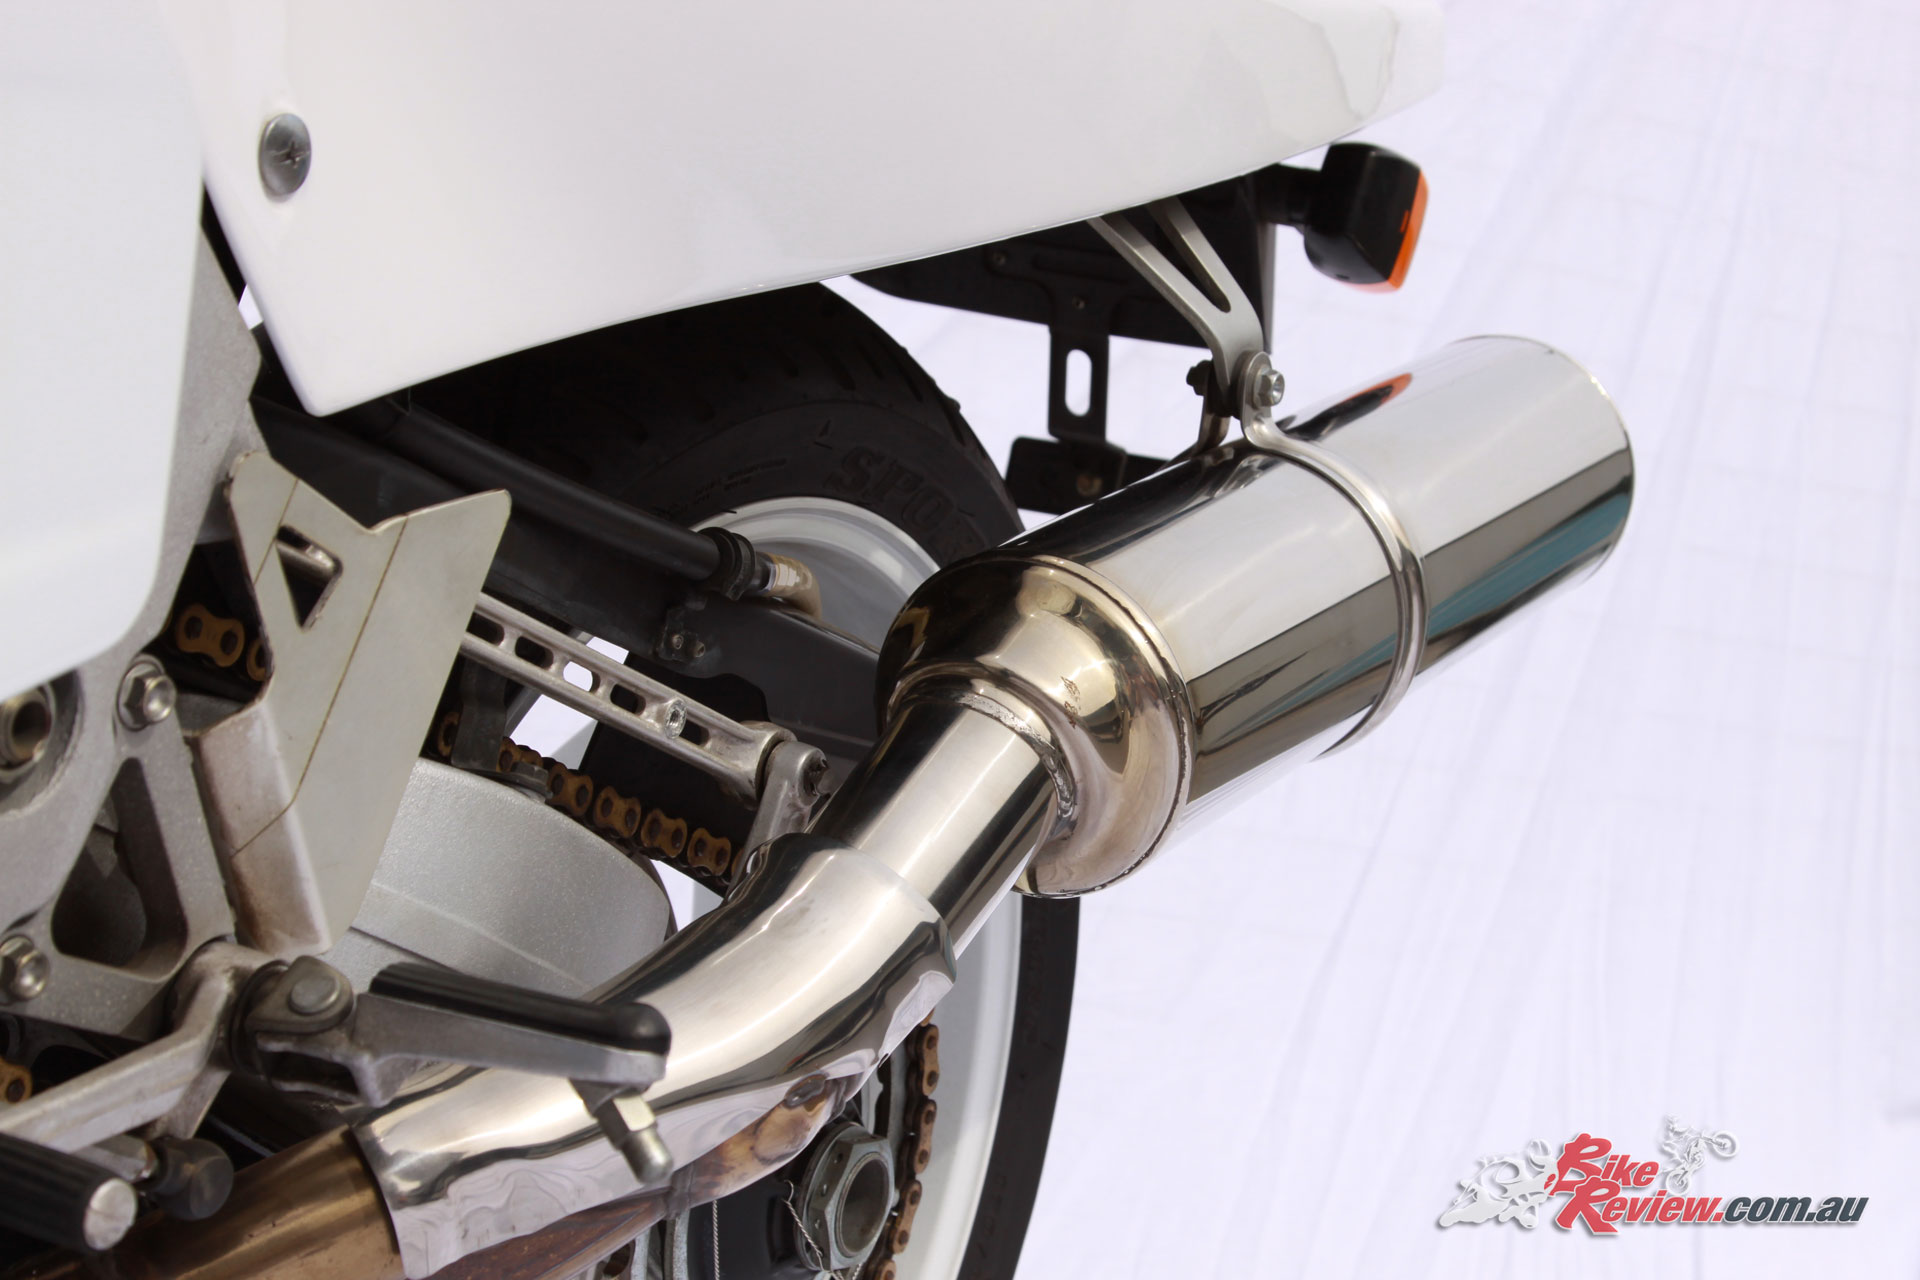 The original exhaust robbed the bike of a fair bit of horsepower but the genuine HRC replacement was really the only other option